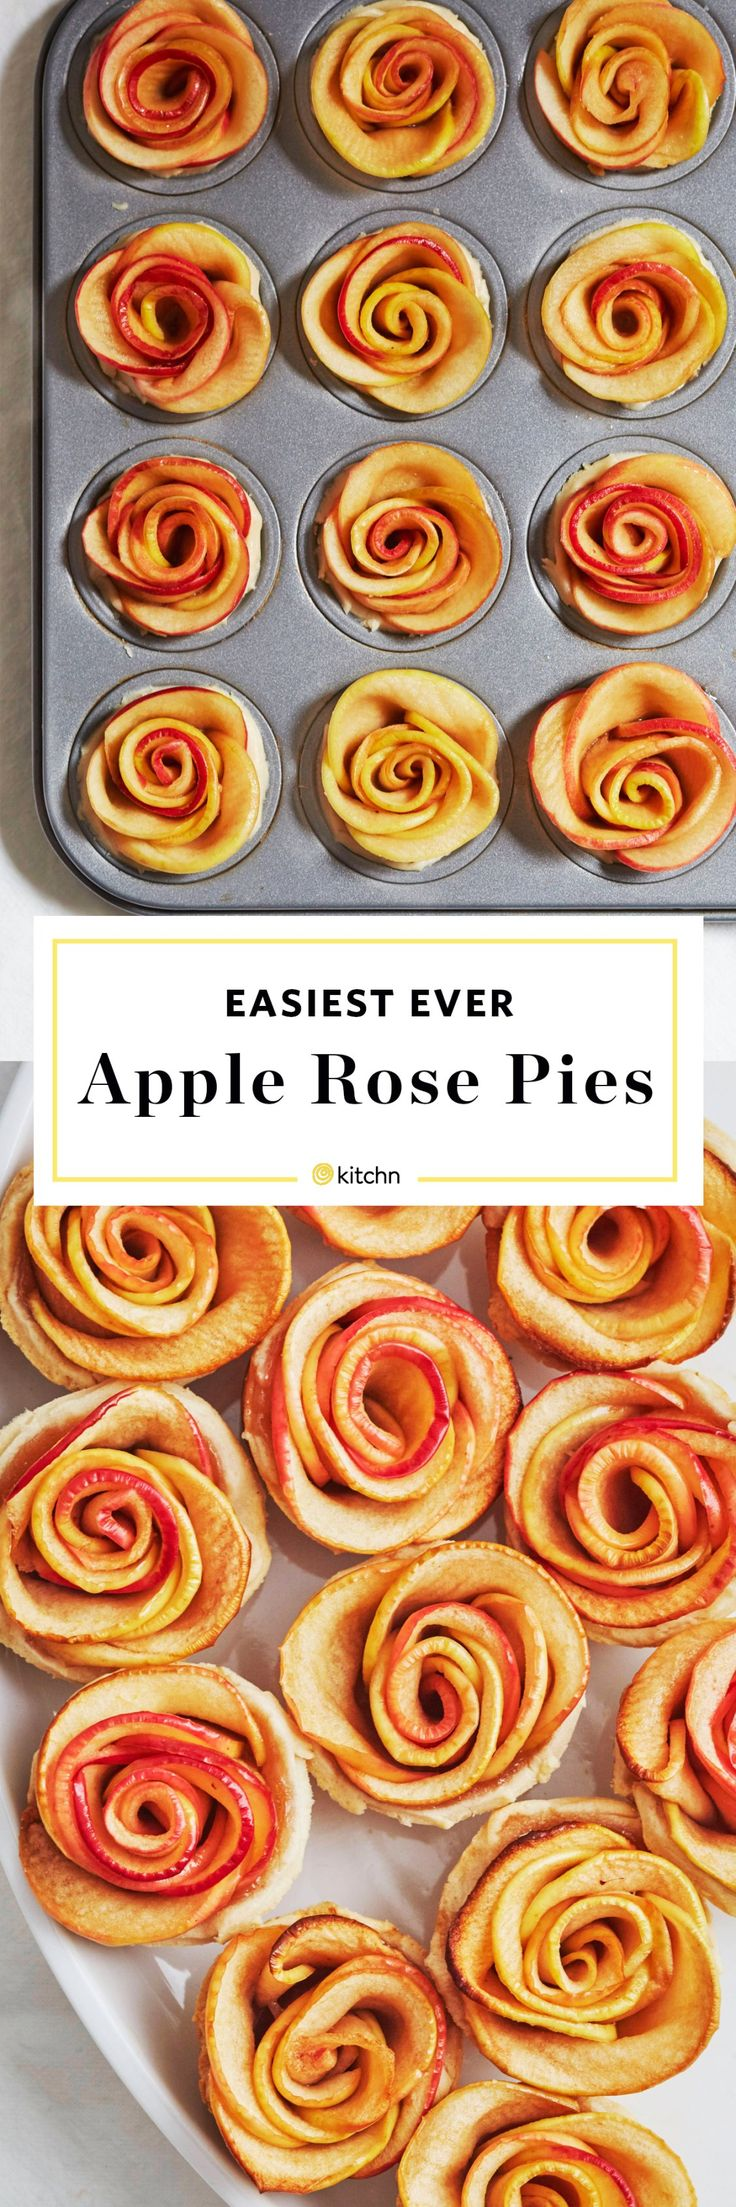 Easy Apple Rose Pies Recipe. Make These BEAUTIFUL edible roses for someone you love. Perfect for Galentines or Valentine's Day! Use Puff pastry, homemade pie crust, or store bought pie crust for these beautiful, EASY individual mini desserts.